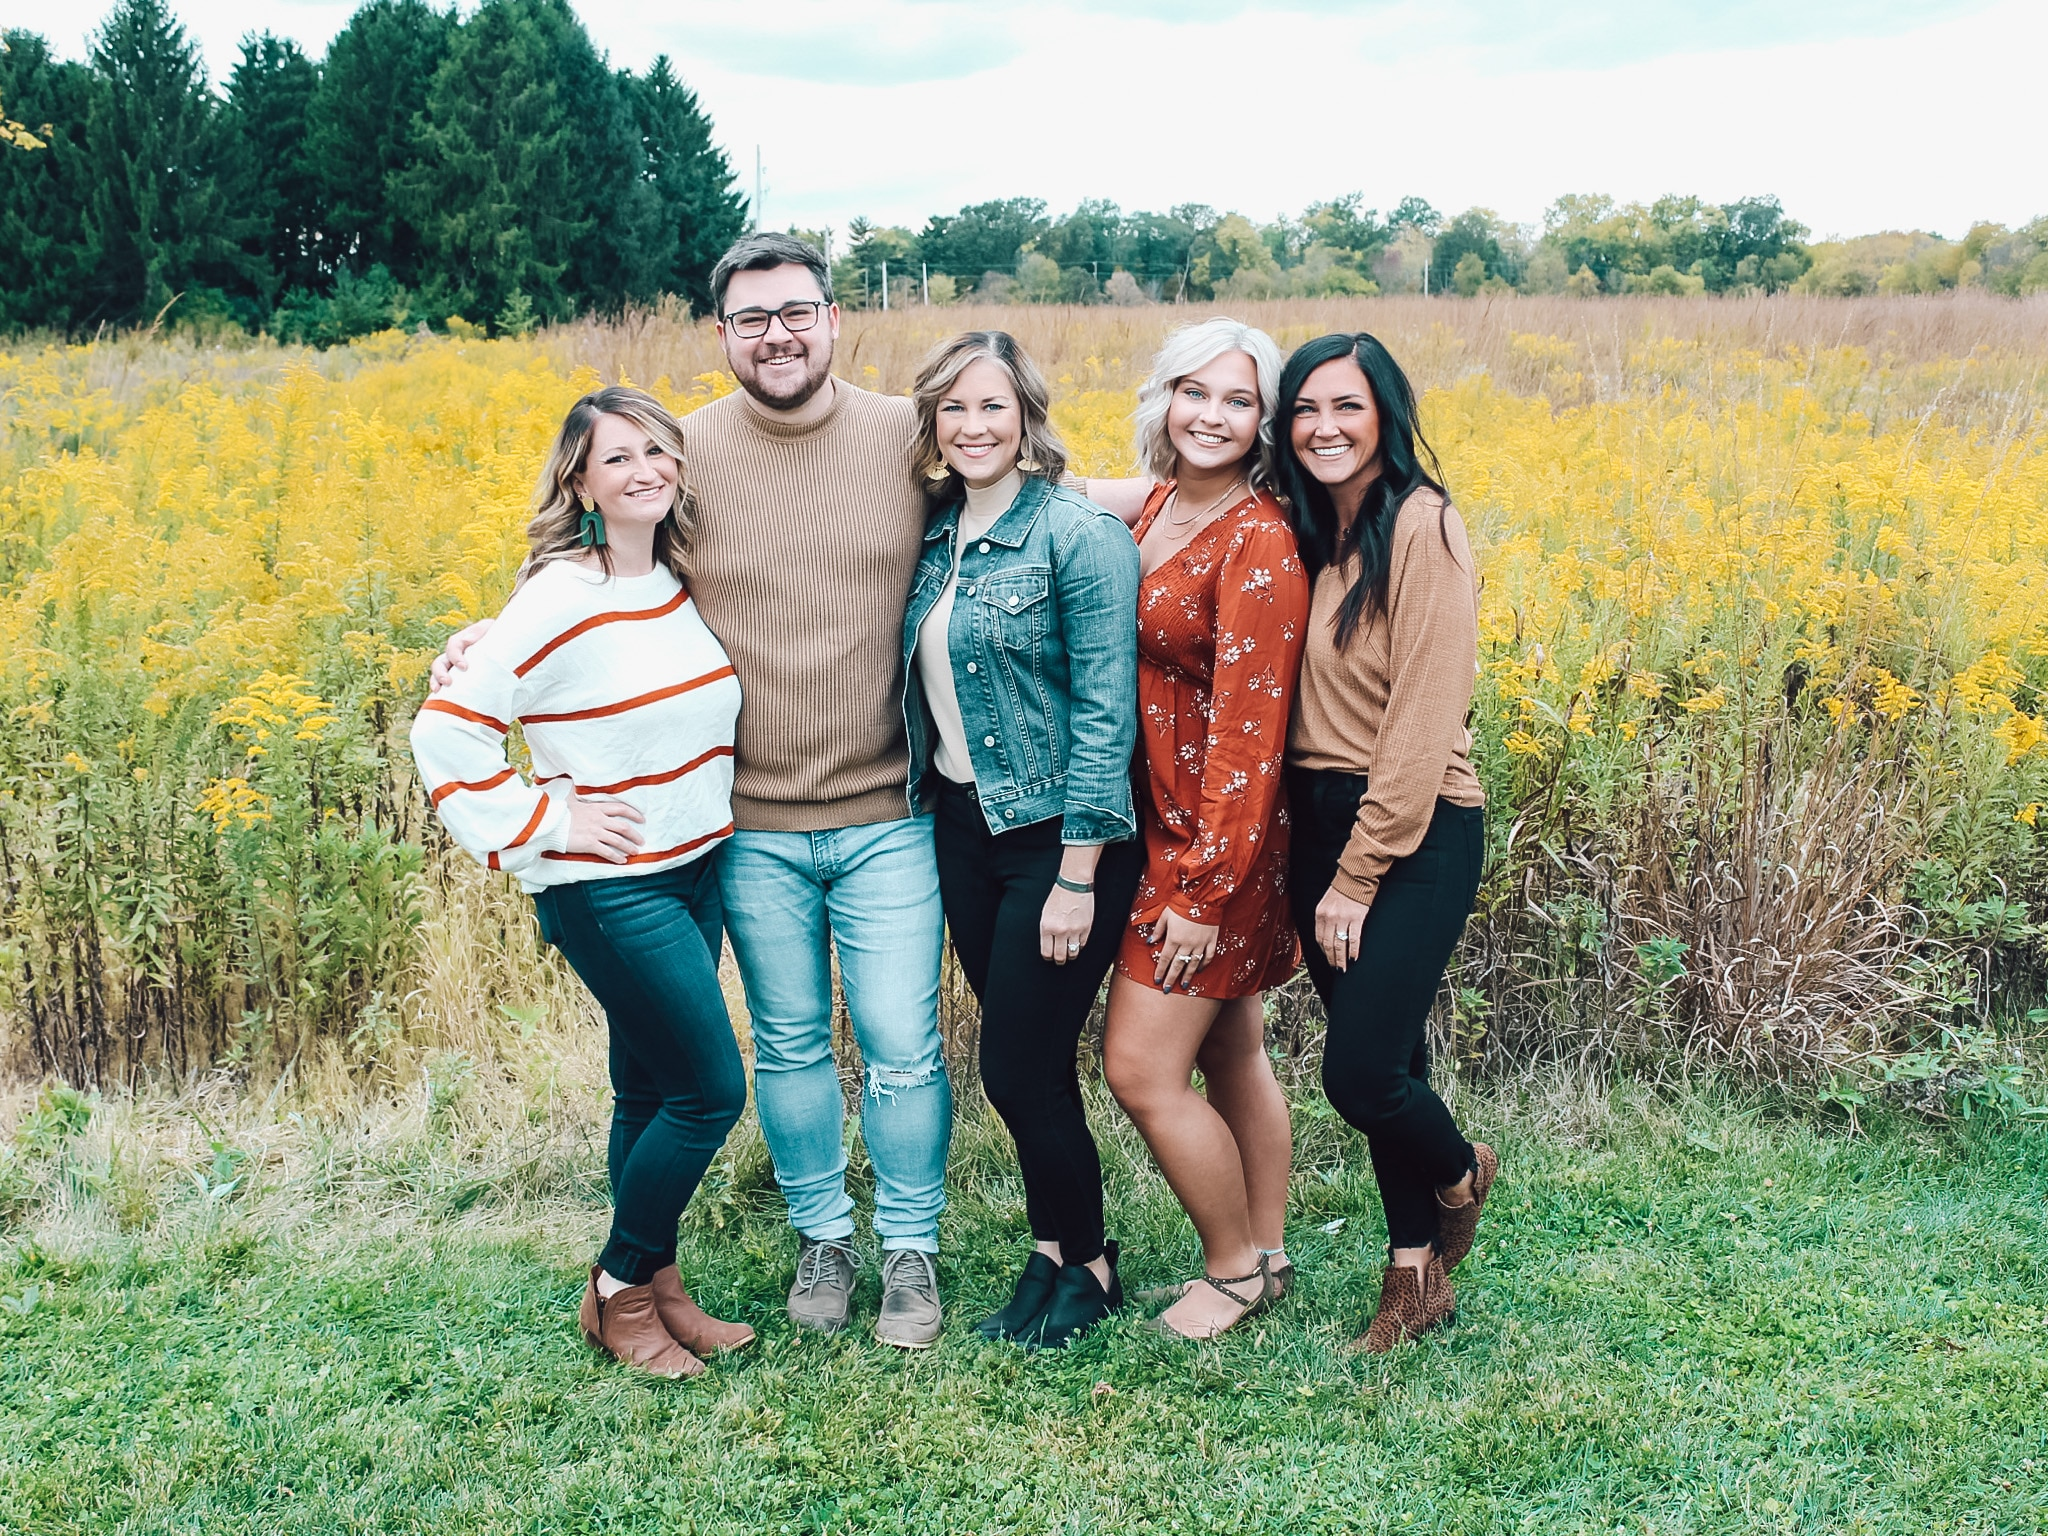 Large Family, Ohio Family Fall Pictures, Stilettos and Diapers, Siblings